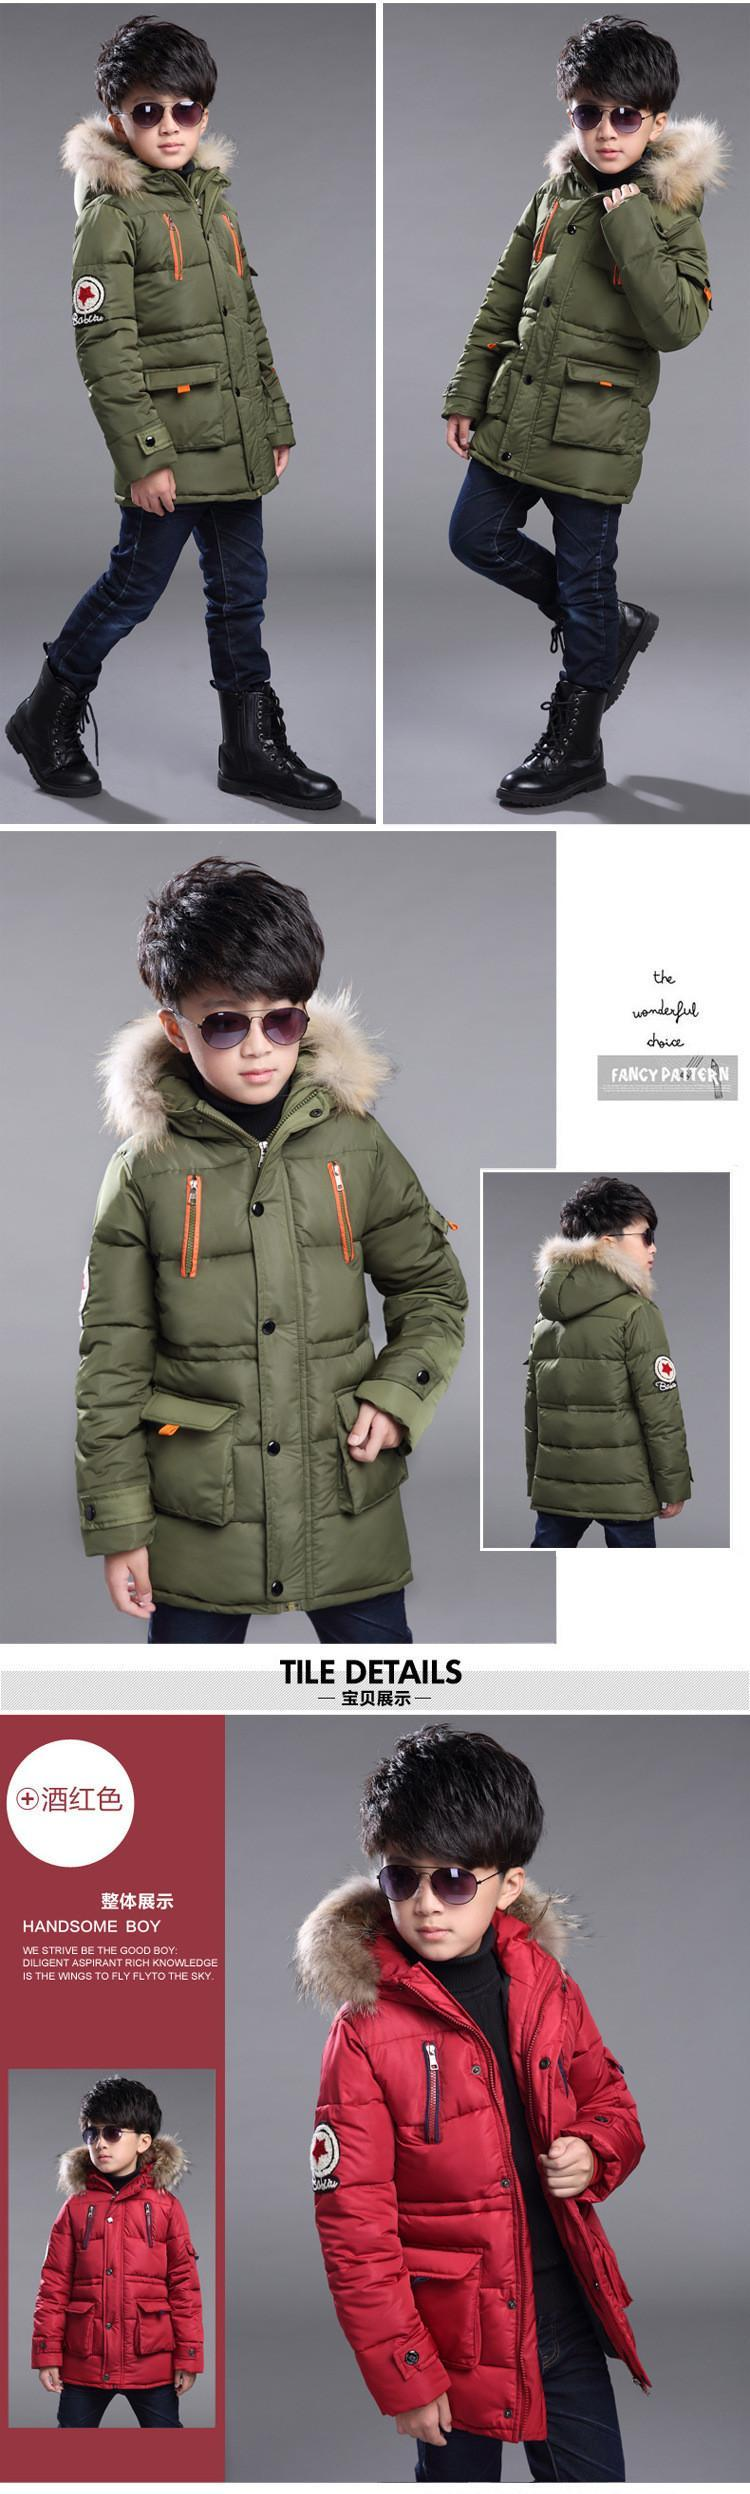 Diligent Men Winter Jackets Cotton Parkas Casual Military Camouflage Youth Winter Warm New Thick Cap Cotton-padded Coat Long Style Jacket Parkas